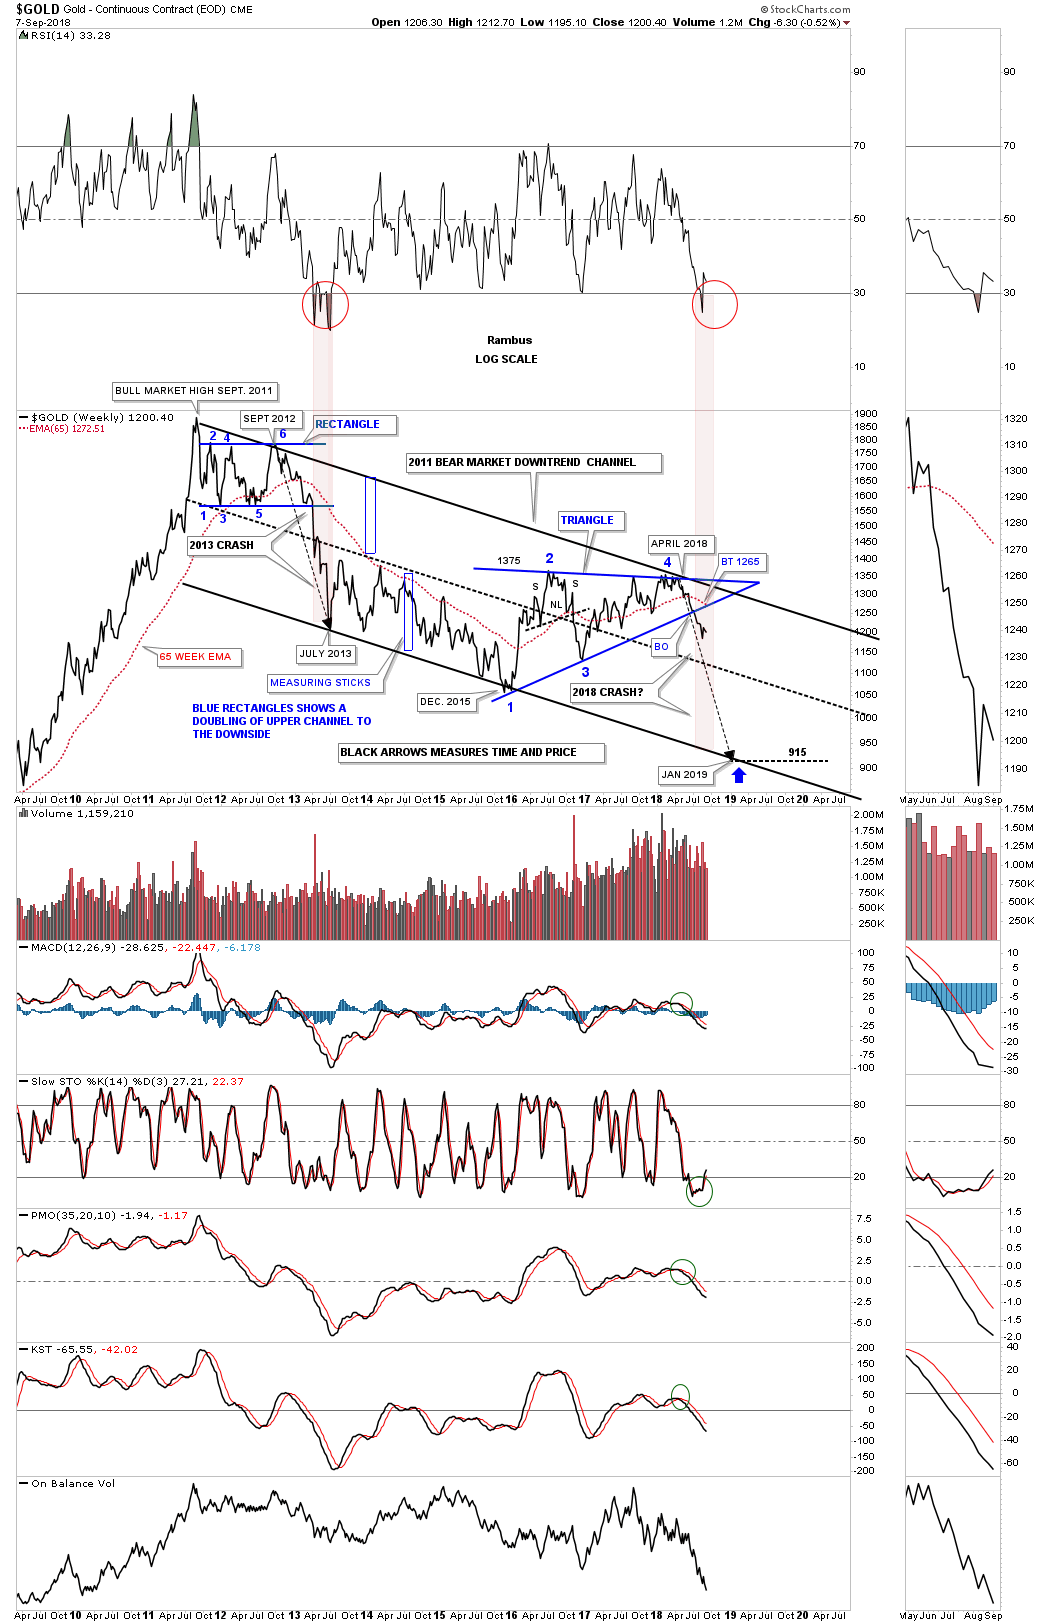 Next Is A Short Term Daily Chart For The Gdx Which Shows Impulse Move Down From February Bearish Rising Wedge